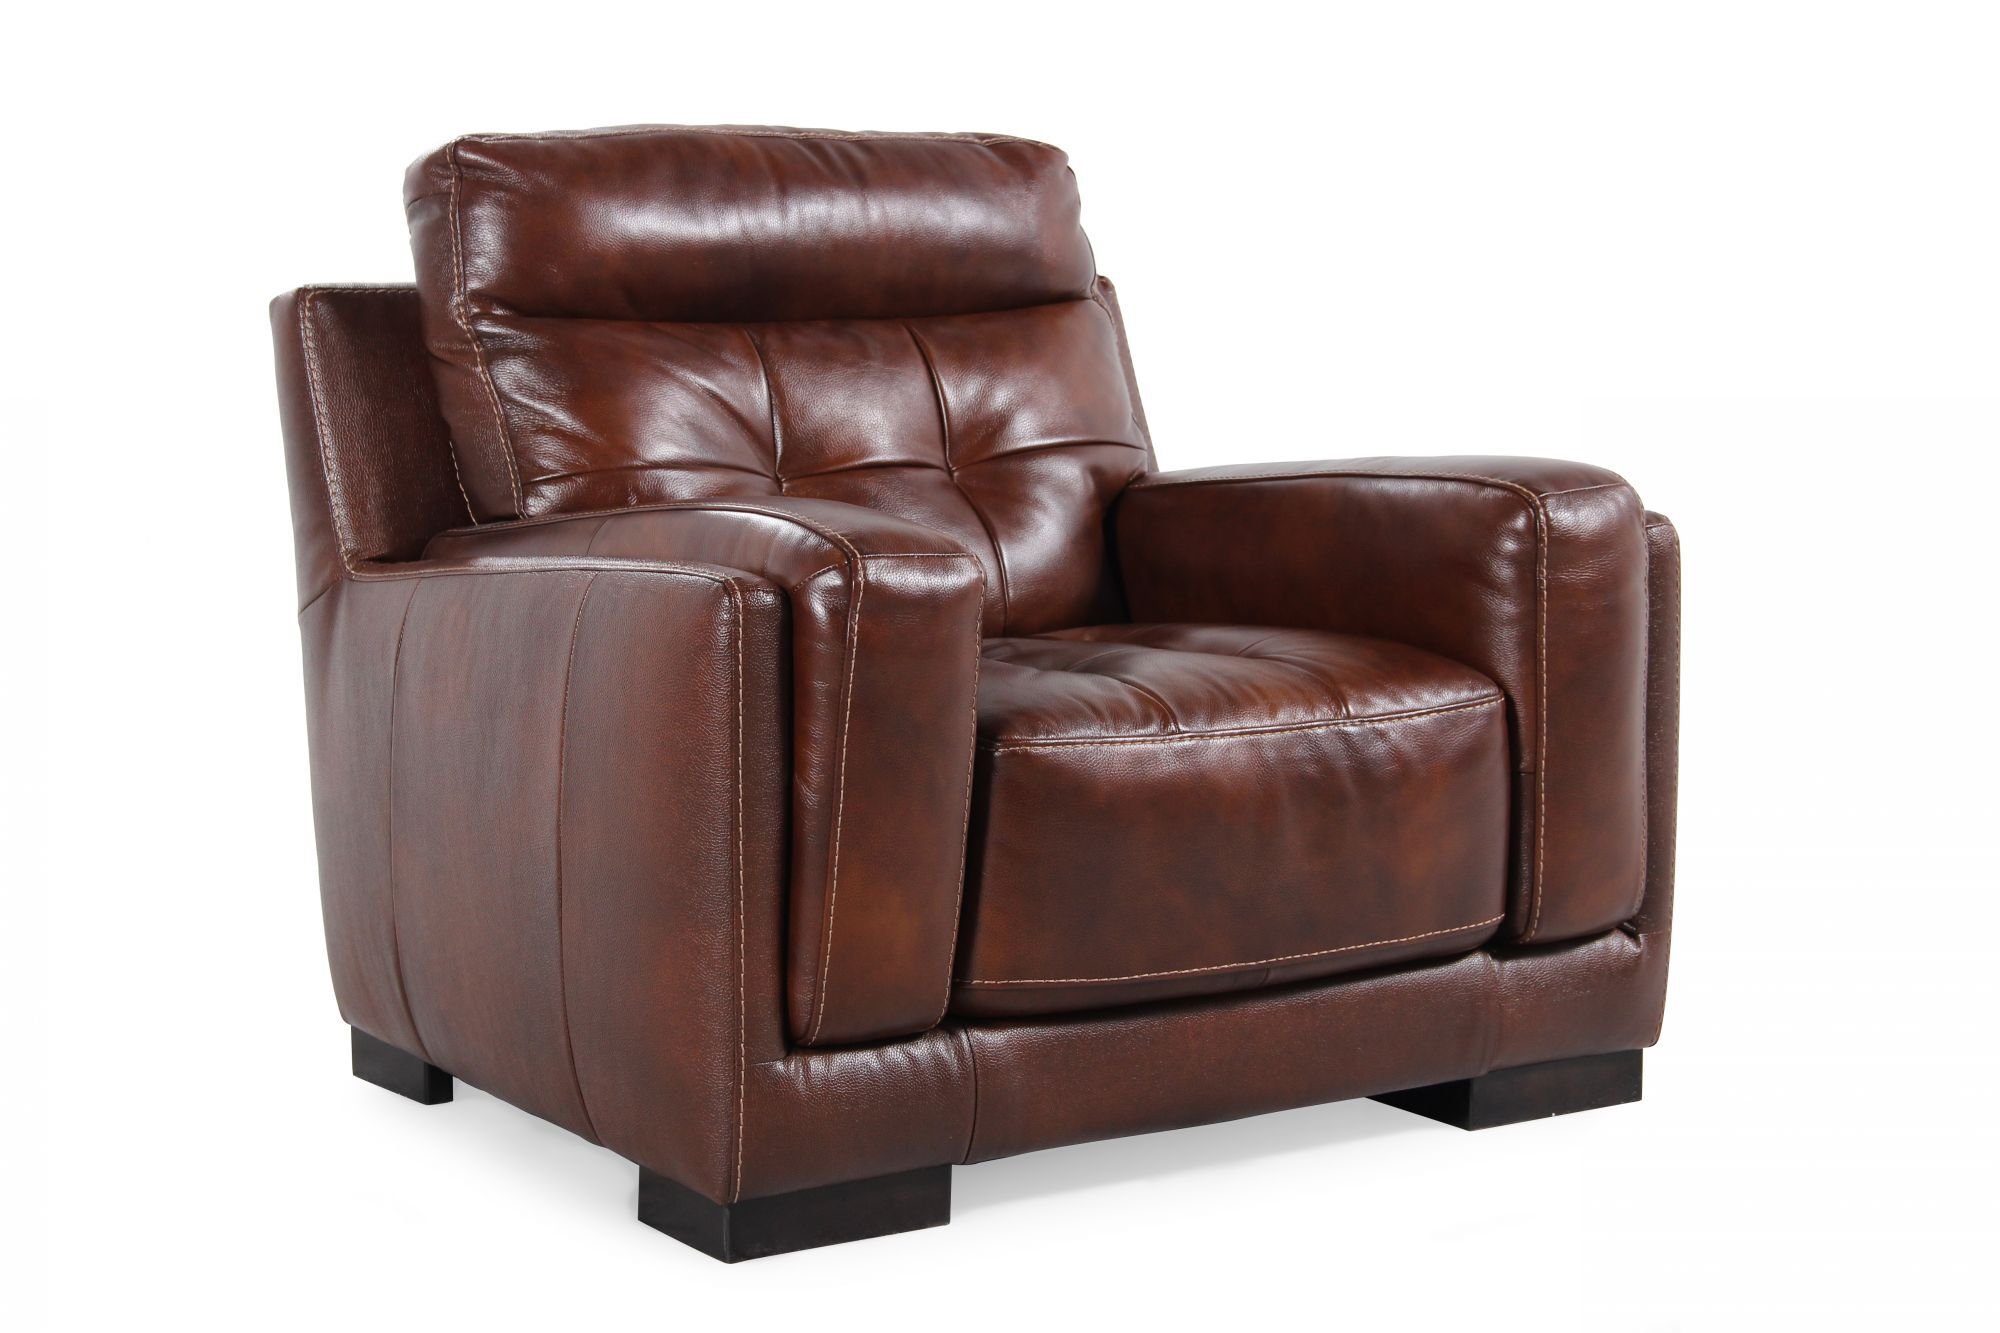 ... Tufted Leather Chair In Brown ...